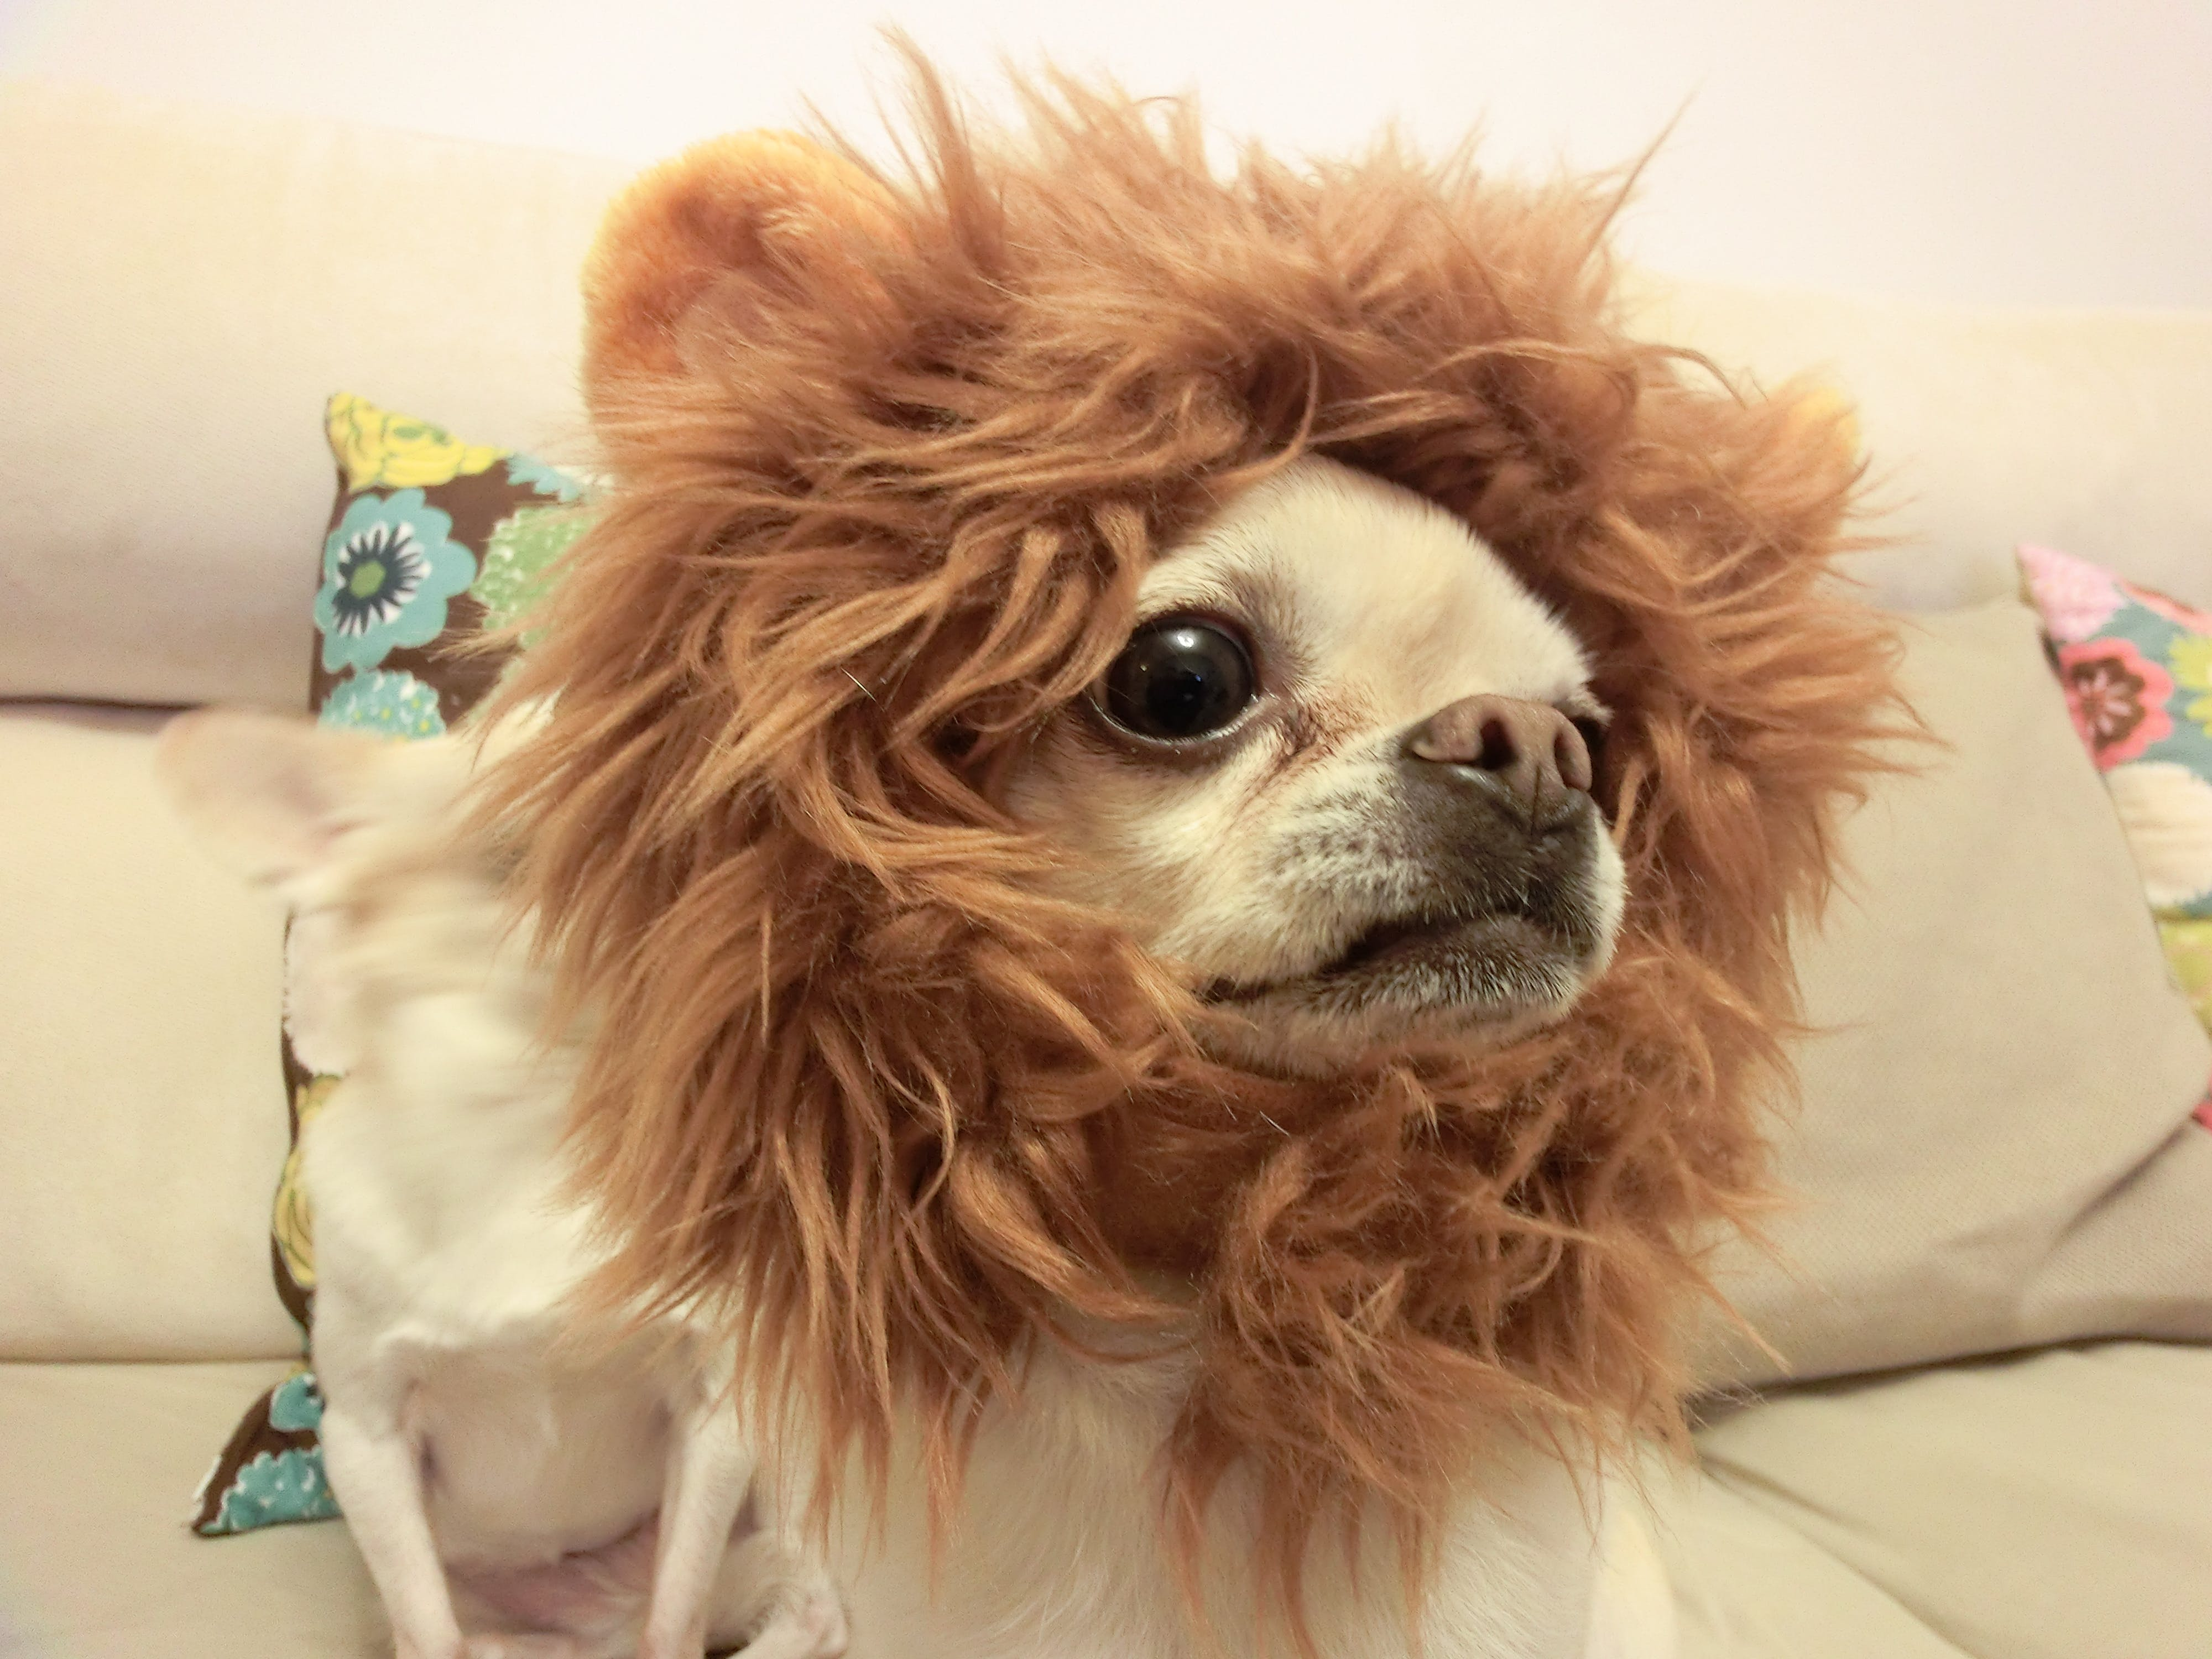 Free stock photo of dog, lion, dog head, chihuahua